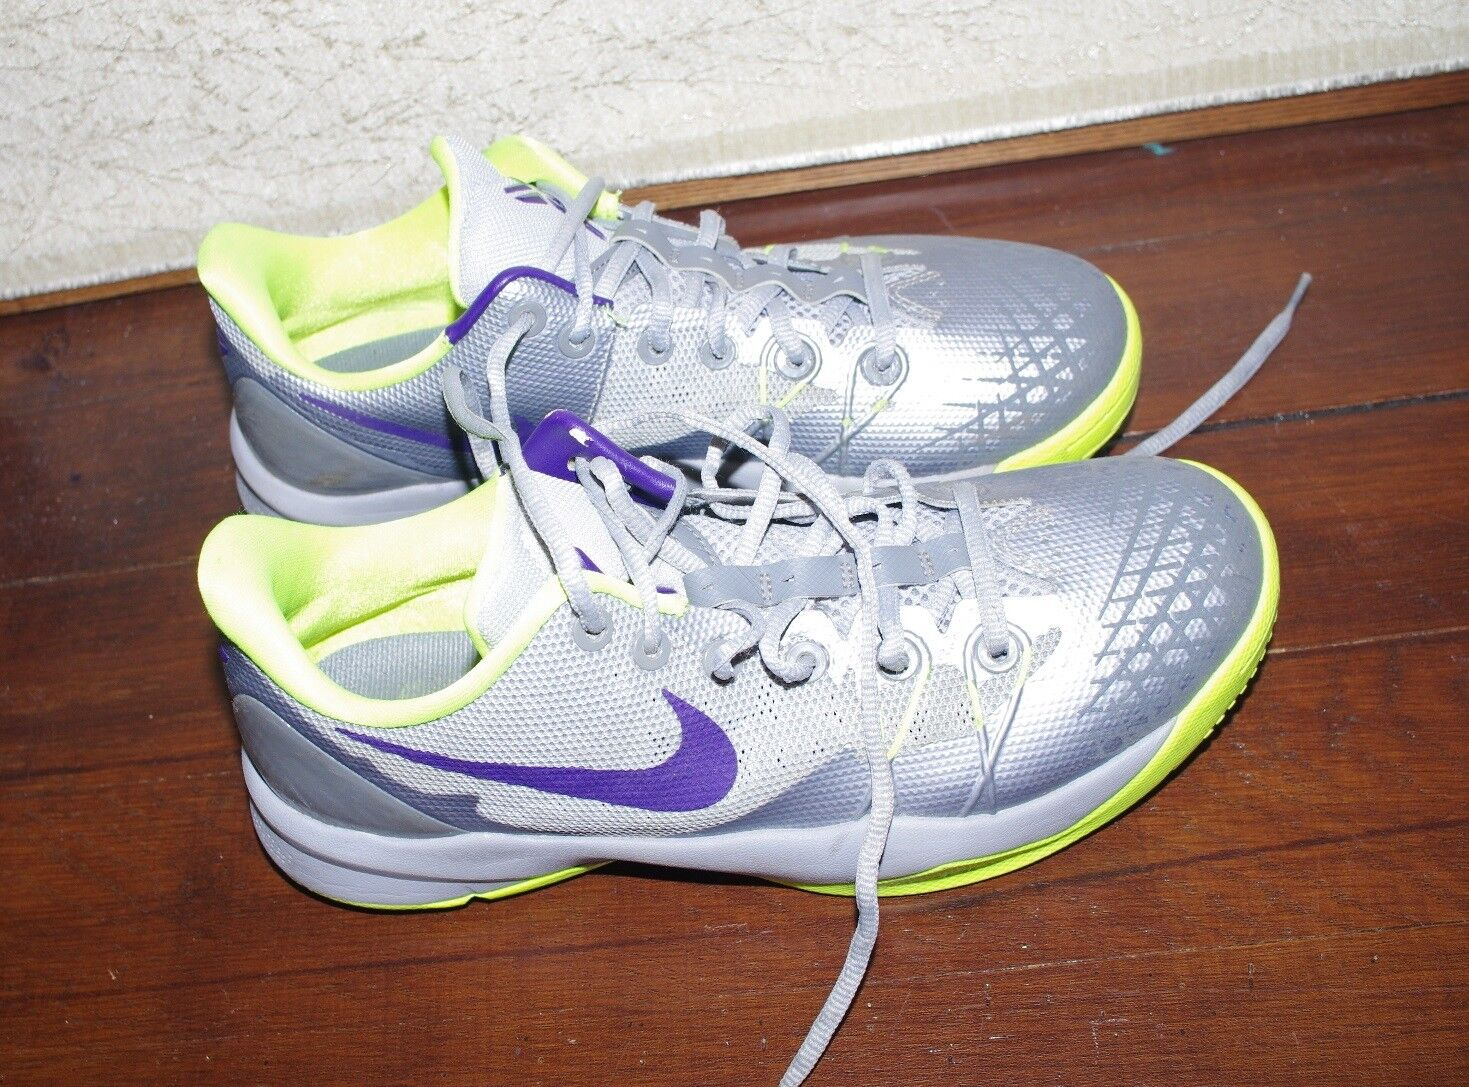 Nike Blade Traction 24 Zoom Gray Yellow Snickers Men's  size :37,5